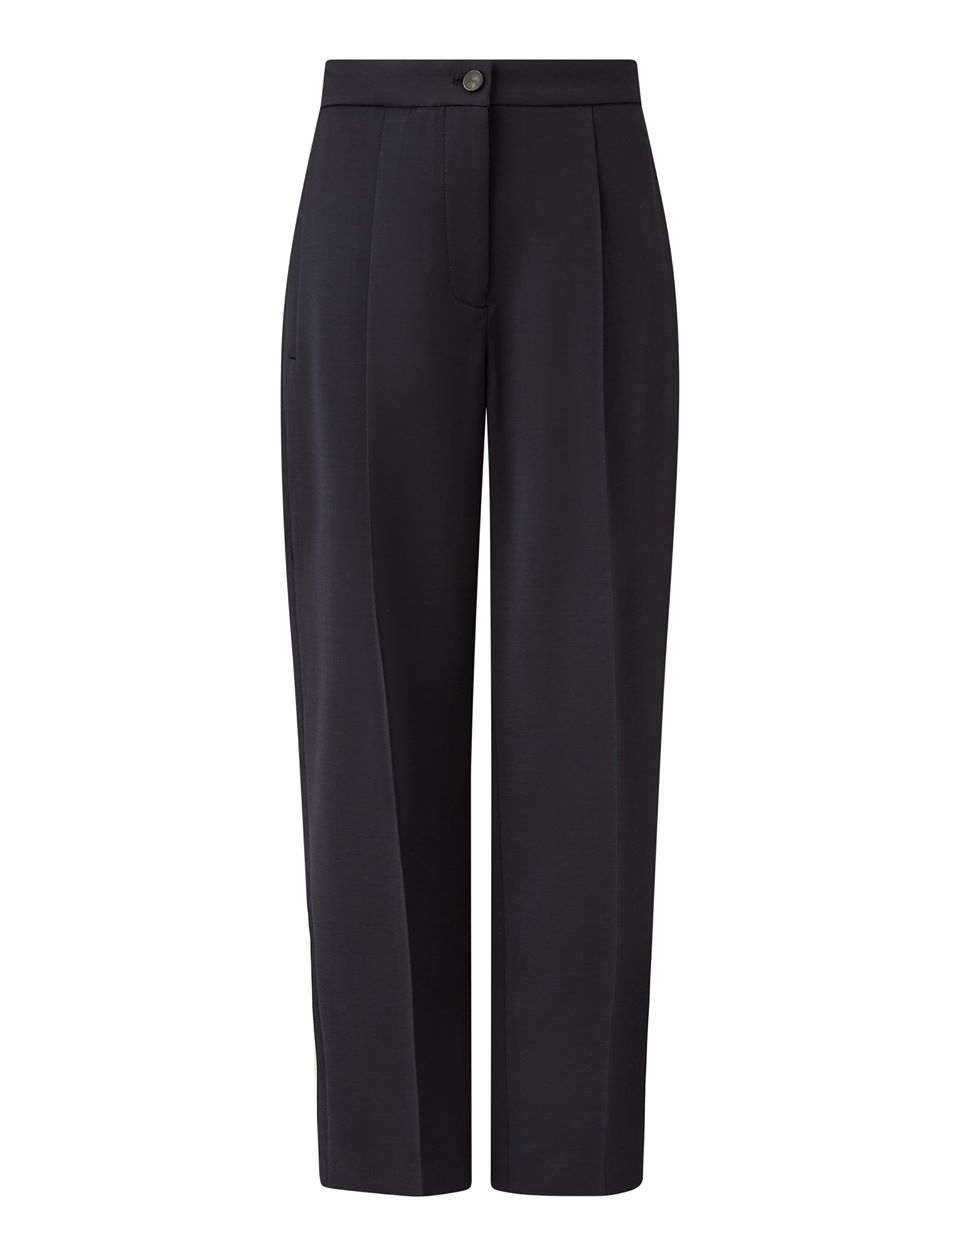 Roge Faille Stretch Trousers